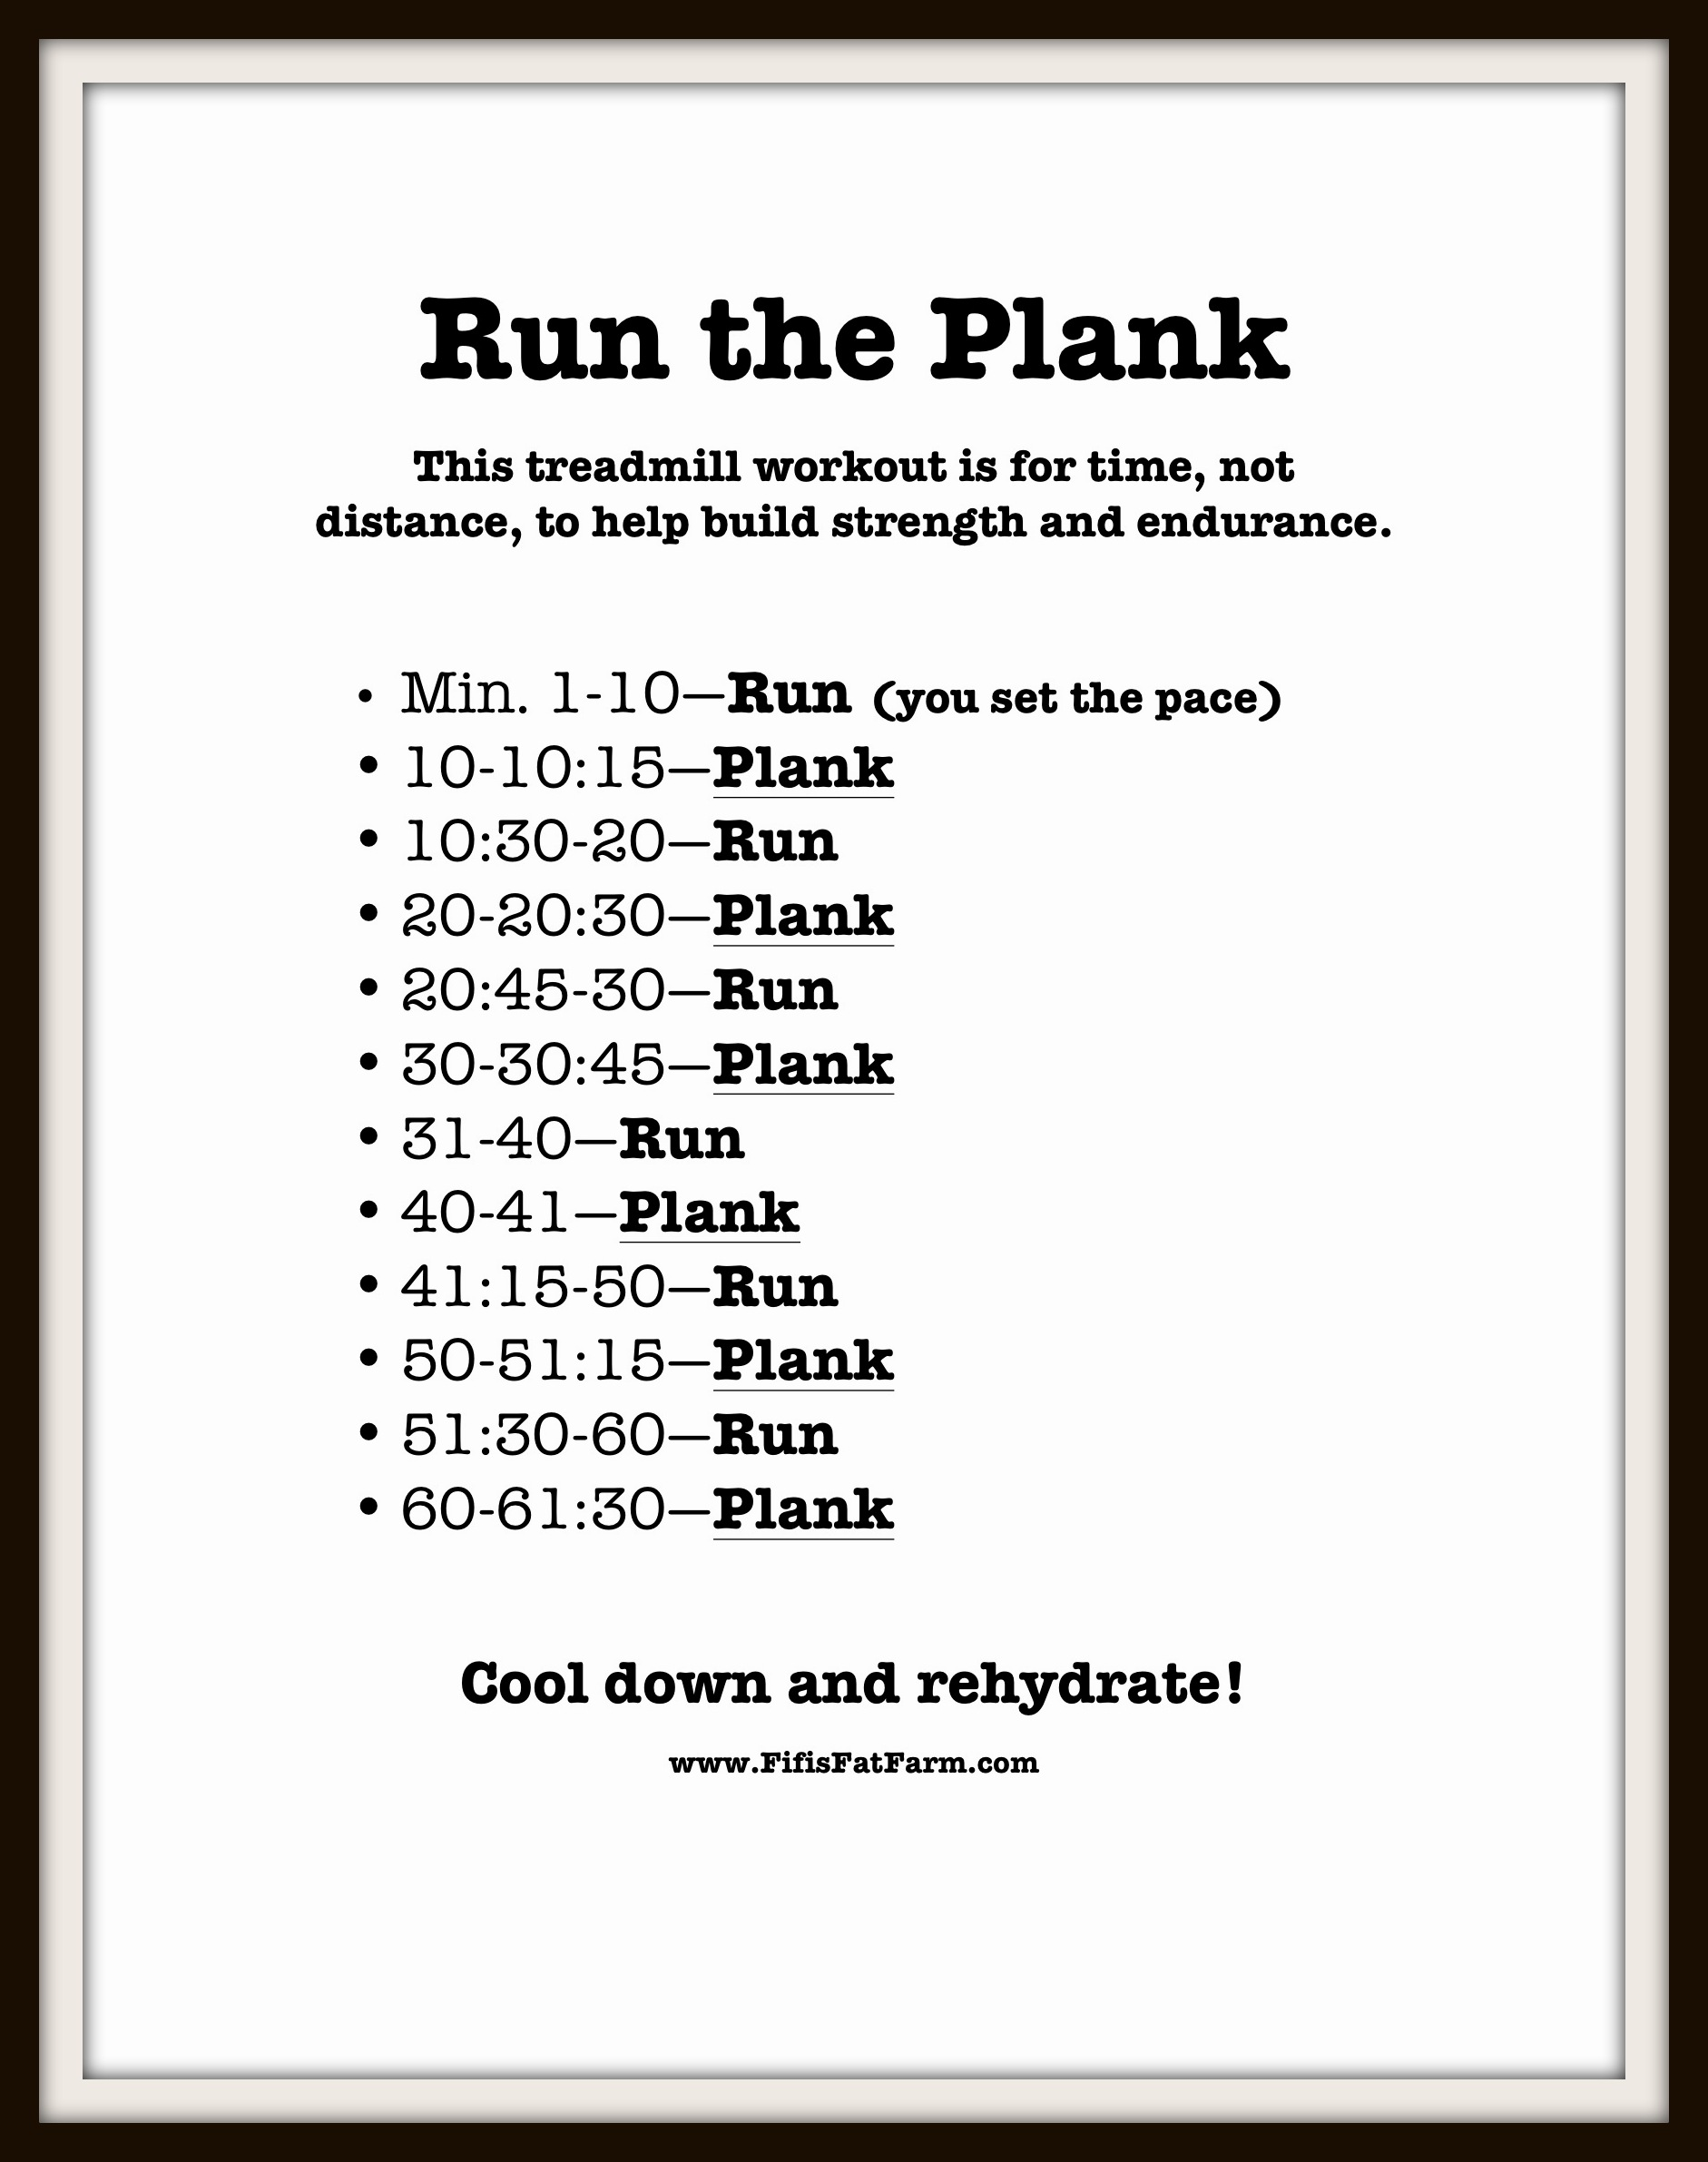 how to build up endurance